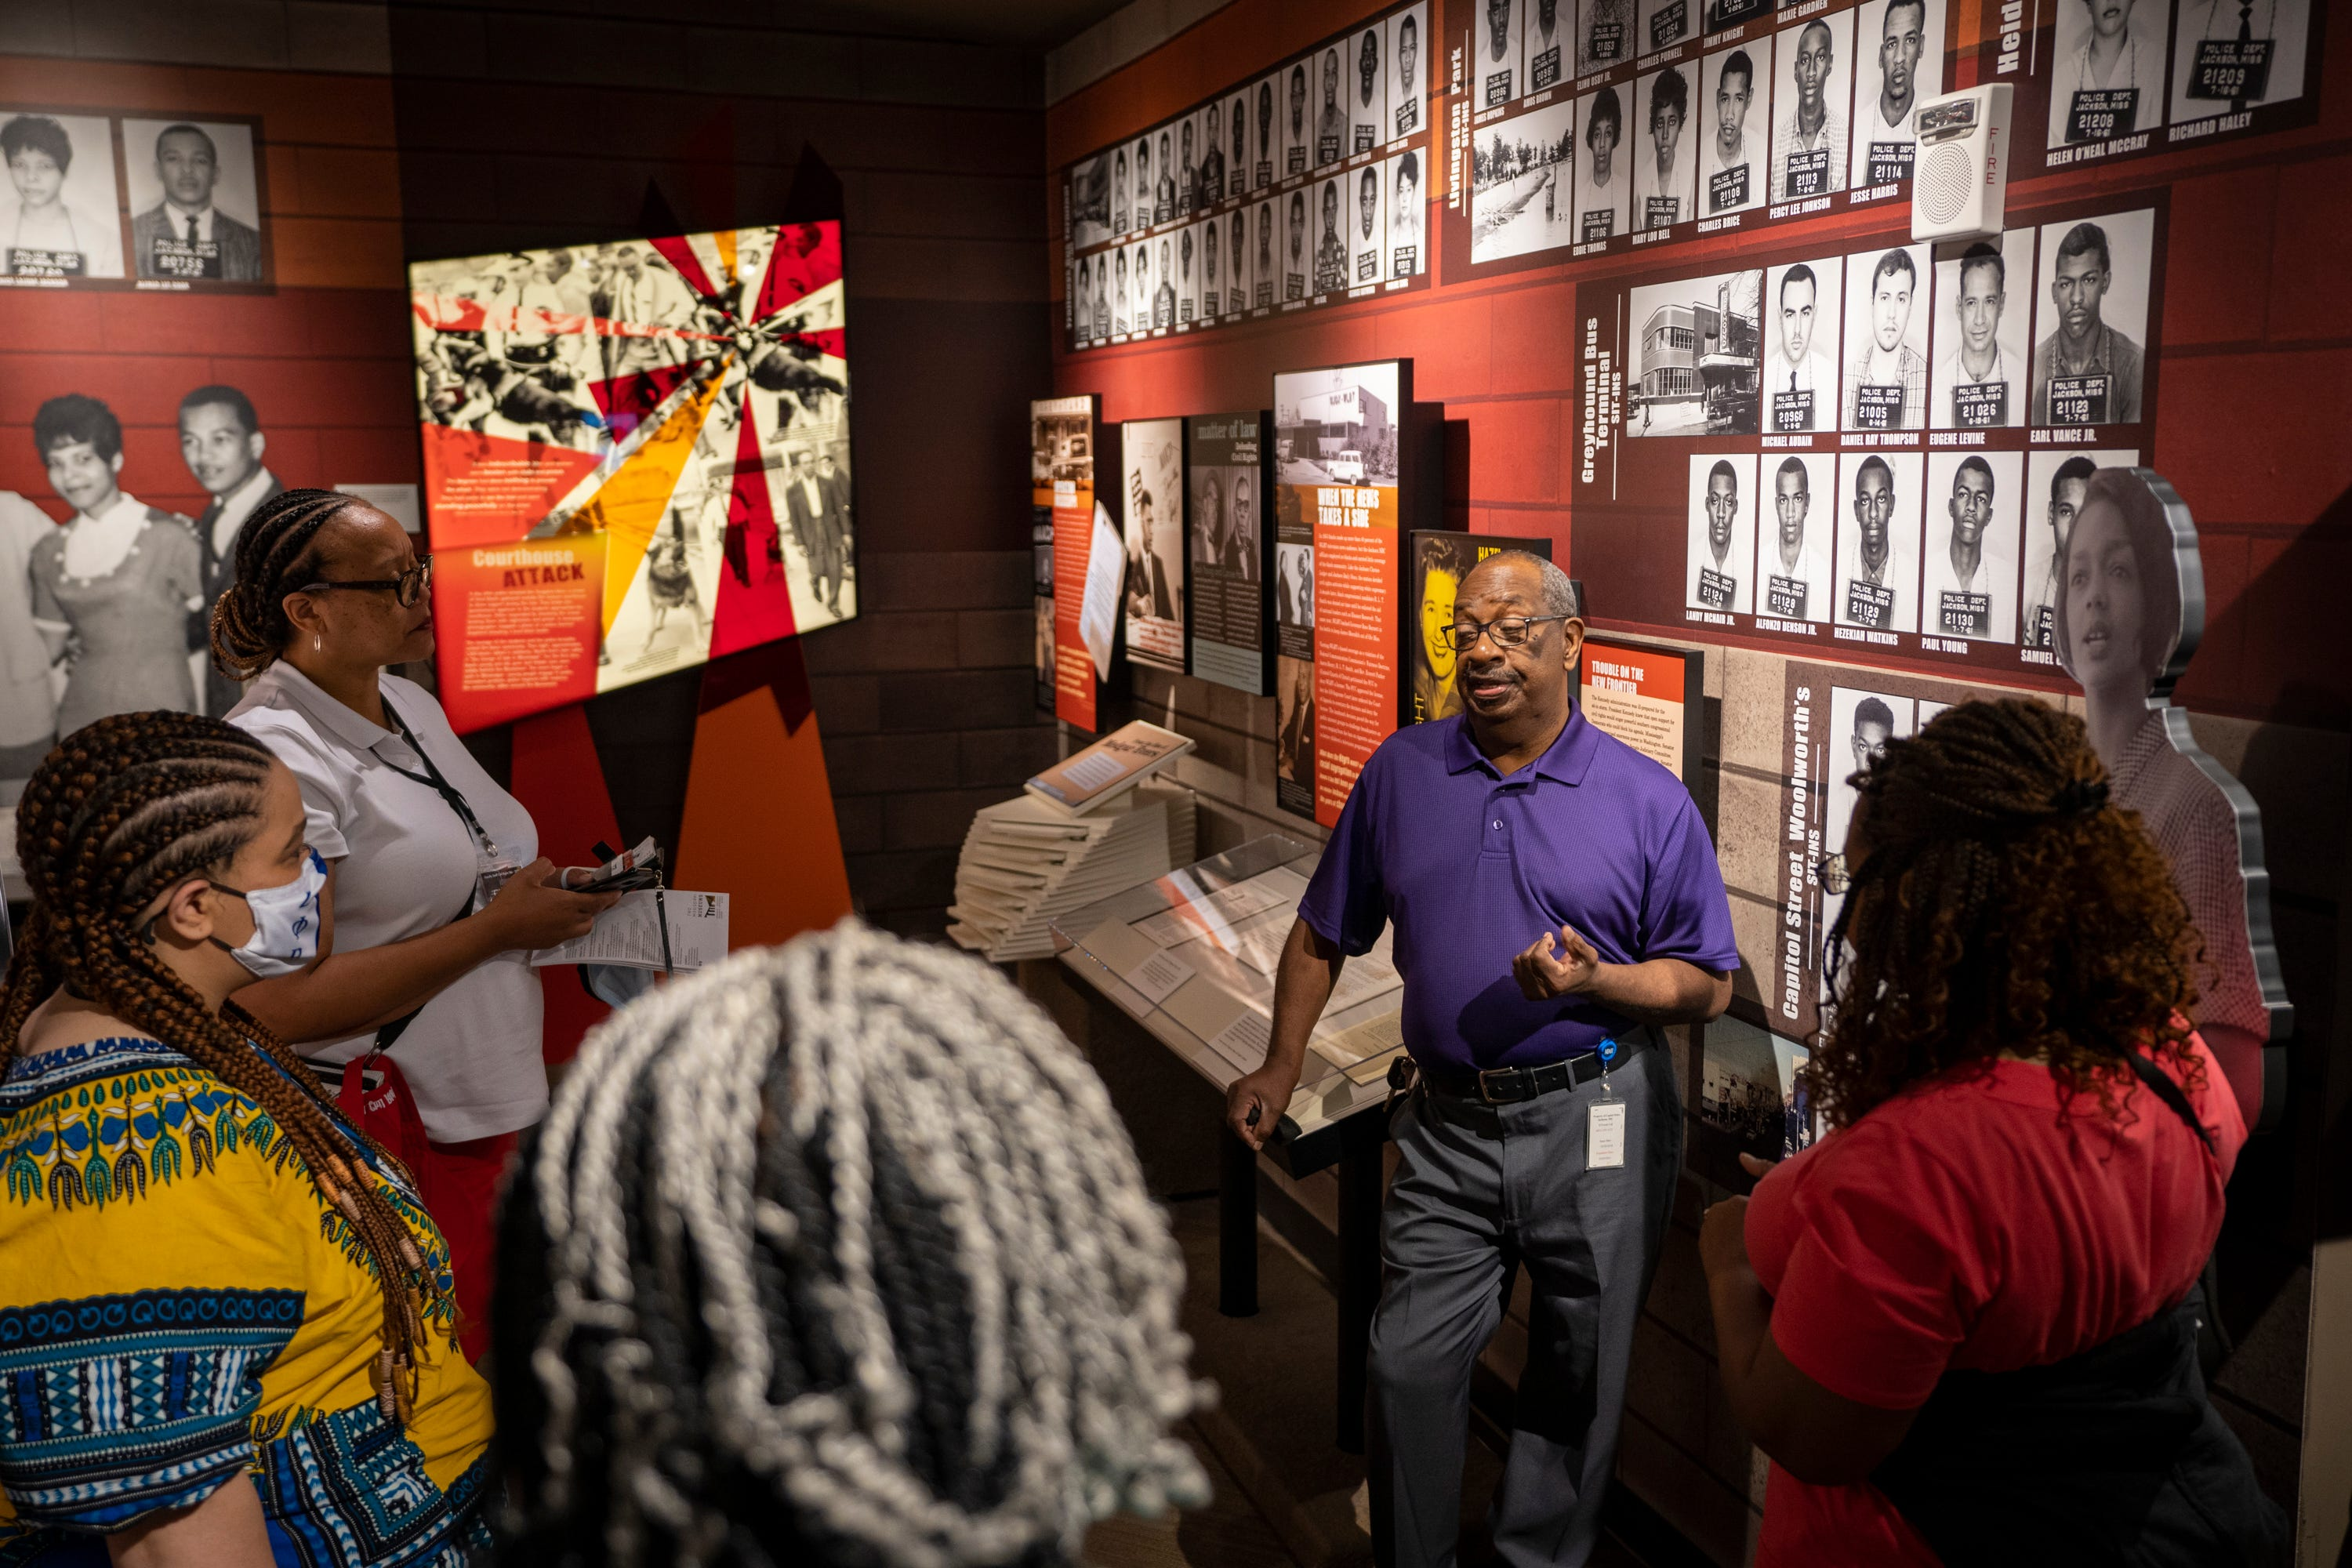 Jul 27, 2021; Jackson, Miss, USA; July 27, 2021; Jackson, Ms.; Hezekiah Watkins speaks with visitors in the Mississippi Civil Rights Museum. Watkins was arrested at the Greyhound Station in Jackson in 1961 at 13 years old, when he and a friend visited in the hopes of seeing The Freedom Riders. Since then, he has worked as a civil rights activist and has been arrested more than 100 times and seriously injured several times in civil rights efforts. Mandatory Credit: Jasper Colt-USA TODAY ORG XMIT: USAT-458441 [Via MerlinFTP Drop]